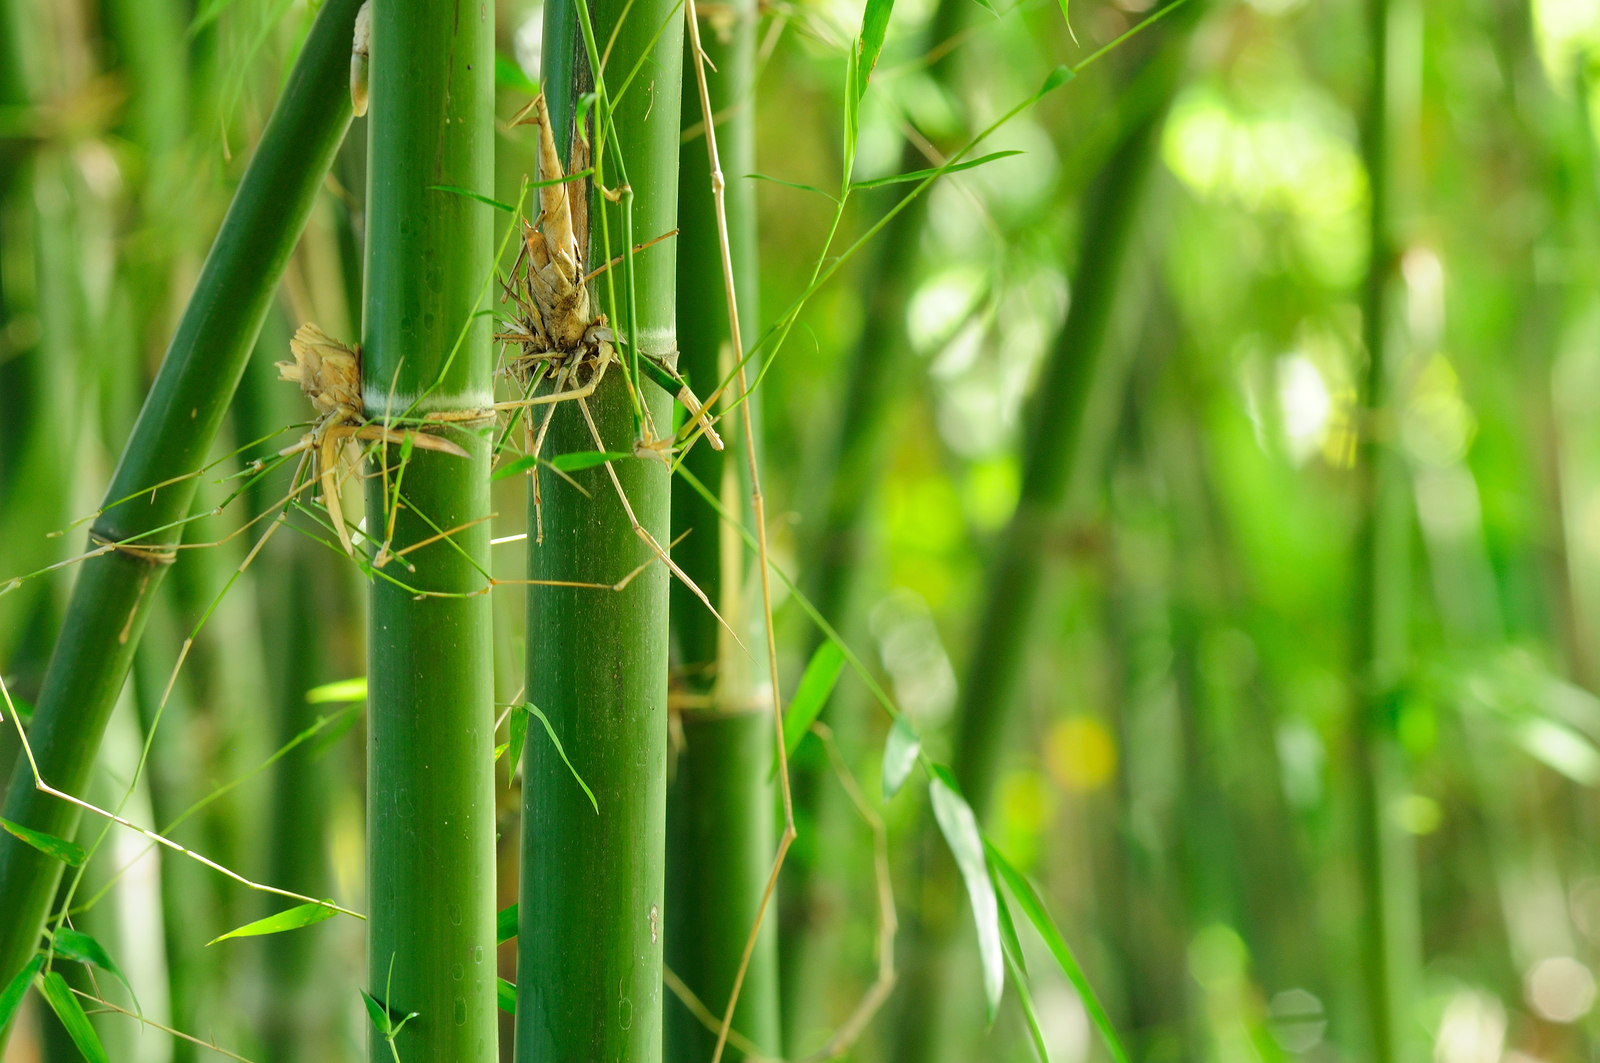 Global Green Bamboo Products Market Outlook – The Daily Chronicle